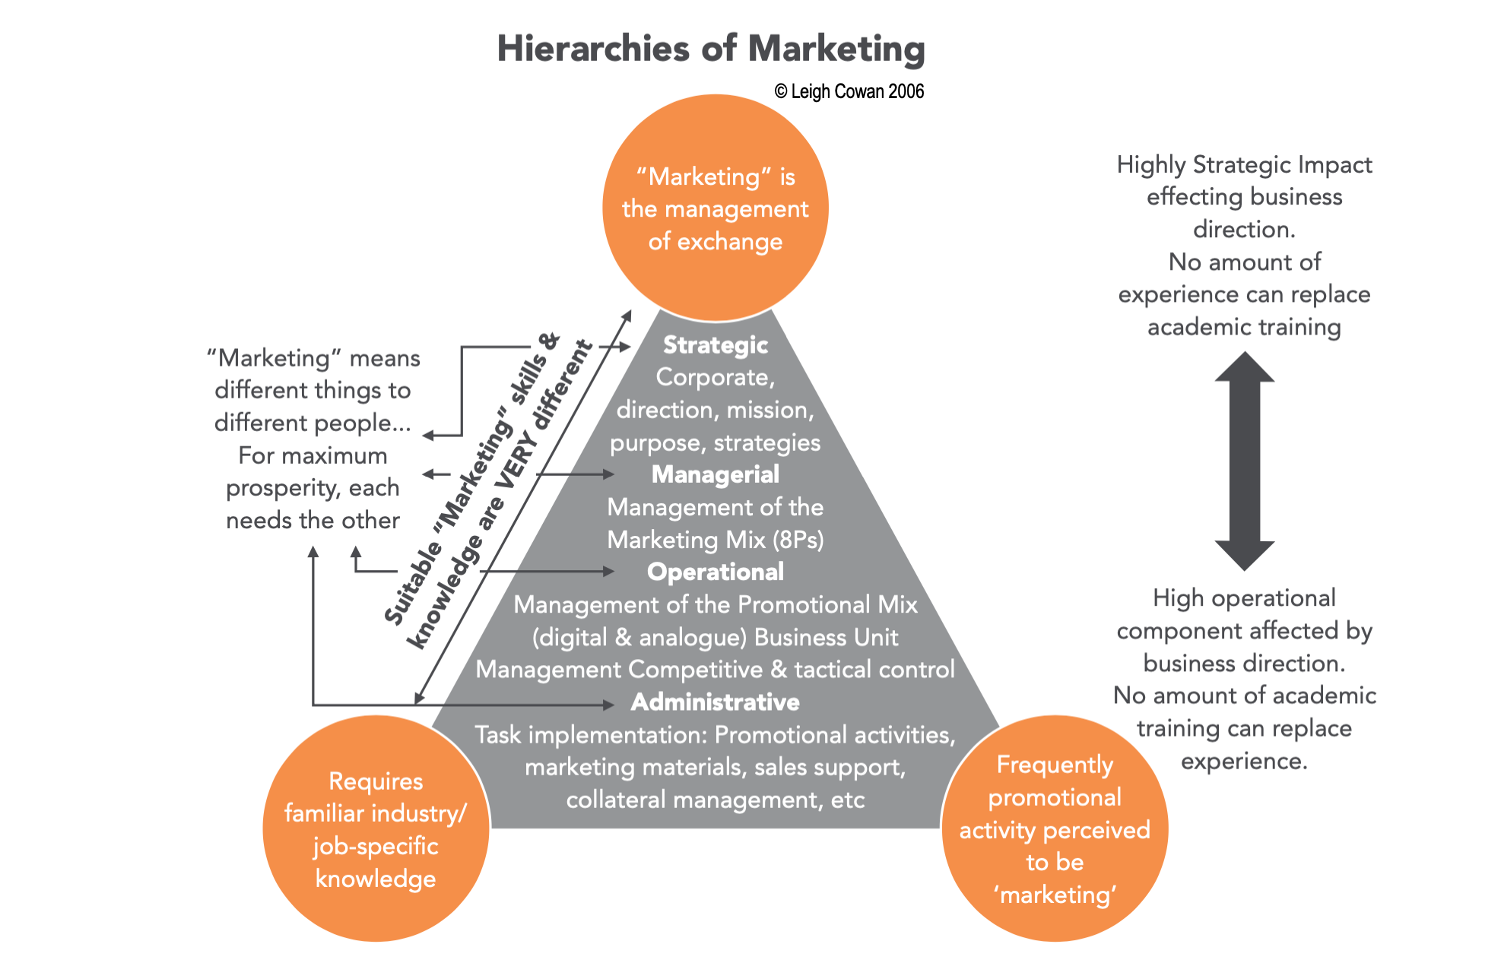 a-hierarchies-of-marketingc2a9